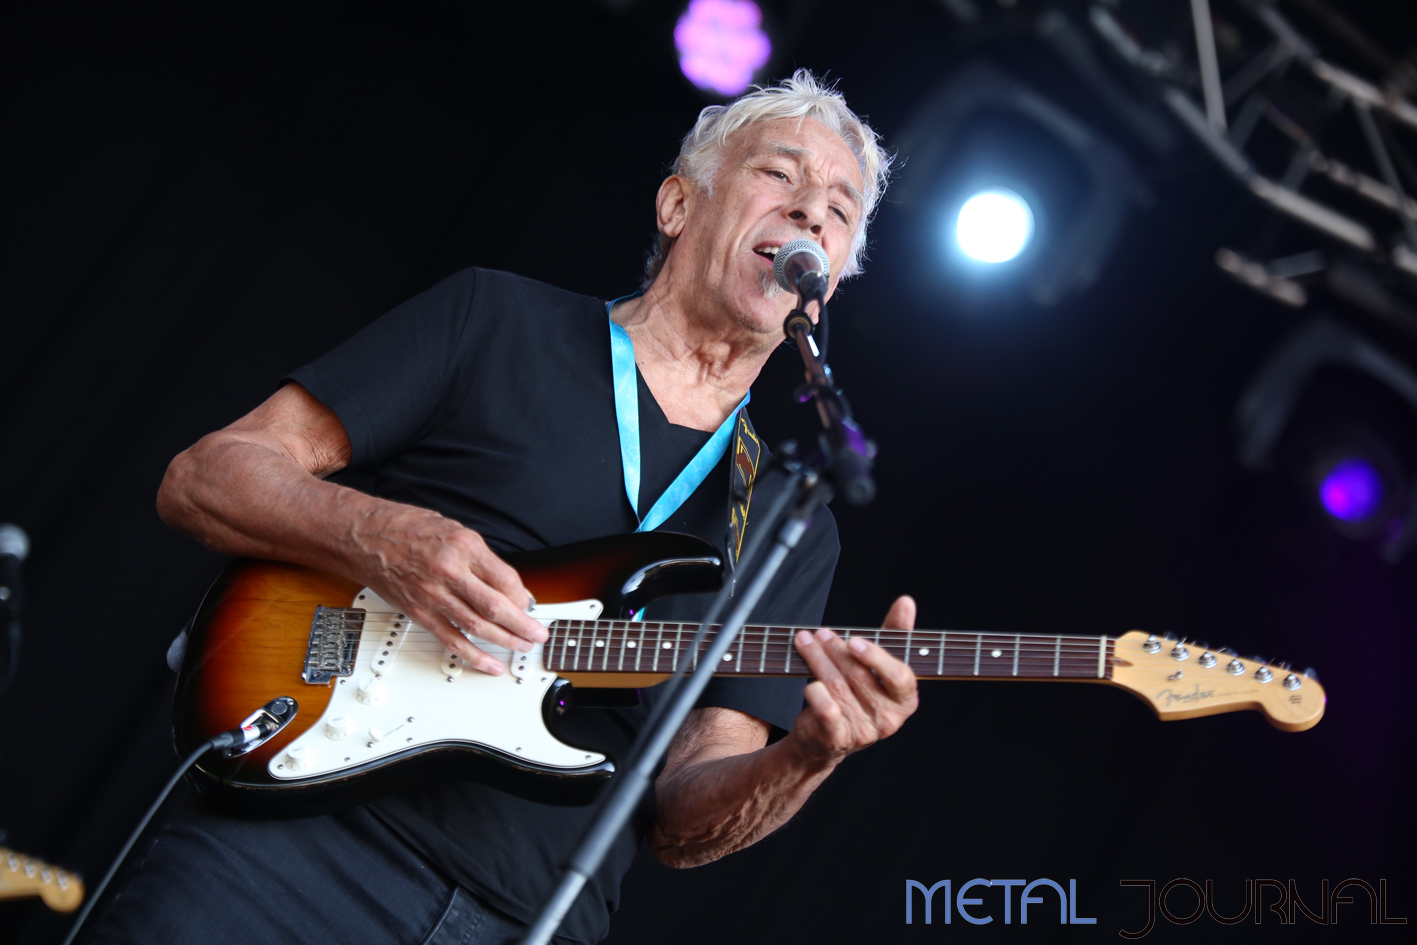 john cale - bbk legends 2018 pic 1